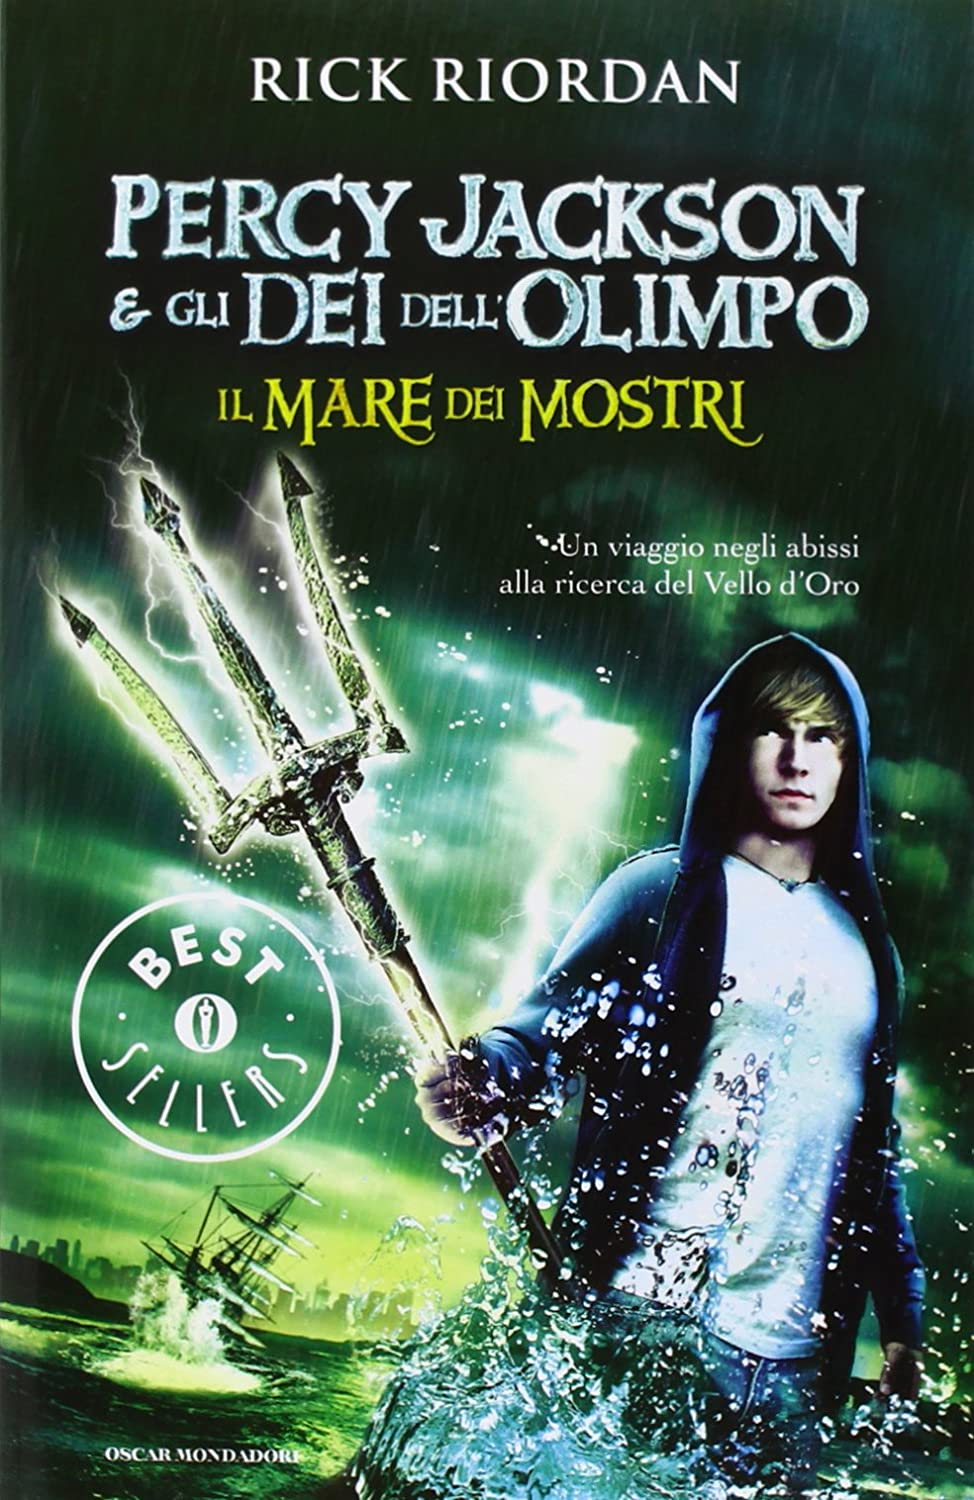 http://www.amazon.it/mare-mostri-Percy-Jackson-dellOlimpo/dp/8804610387/ref=pd_bxgy_14_img_y